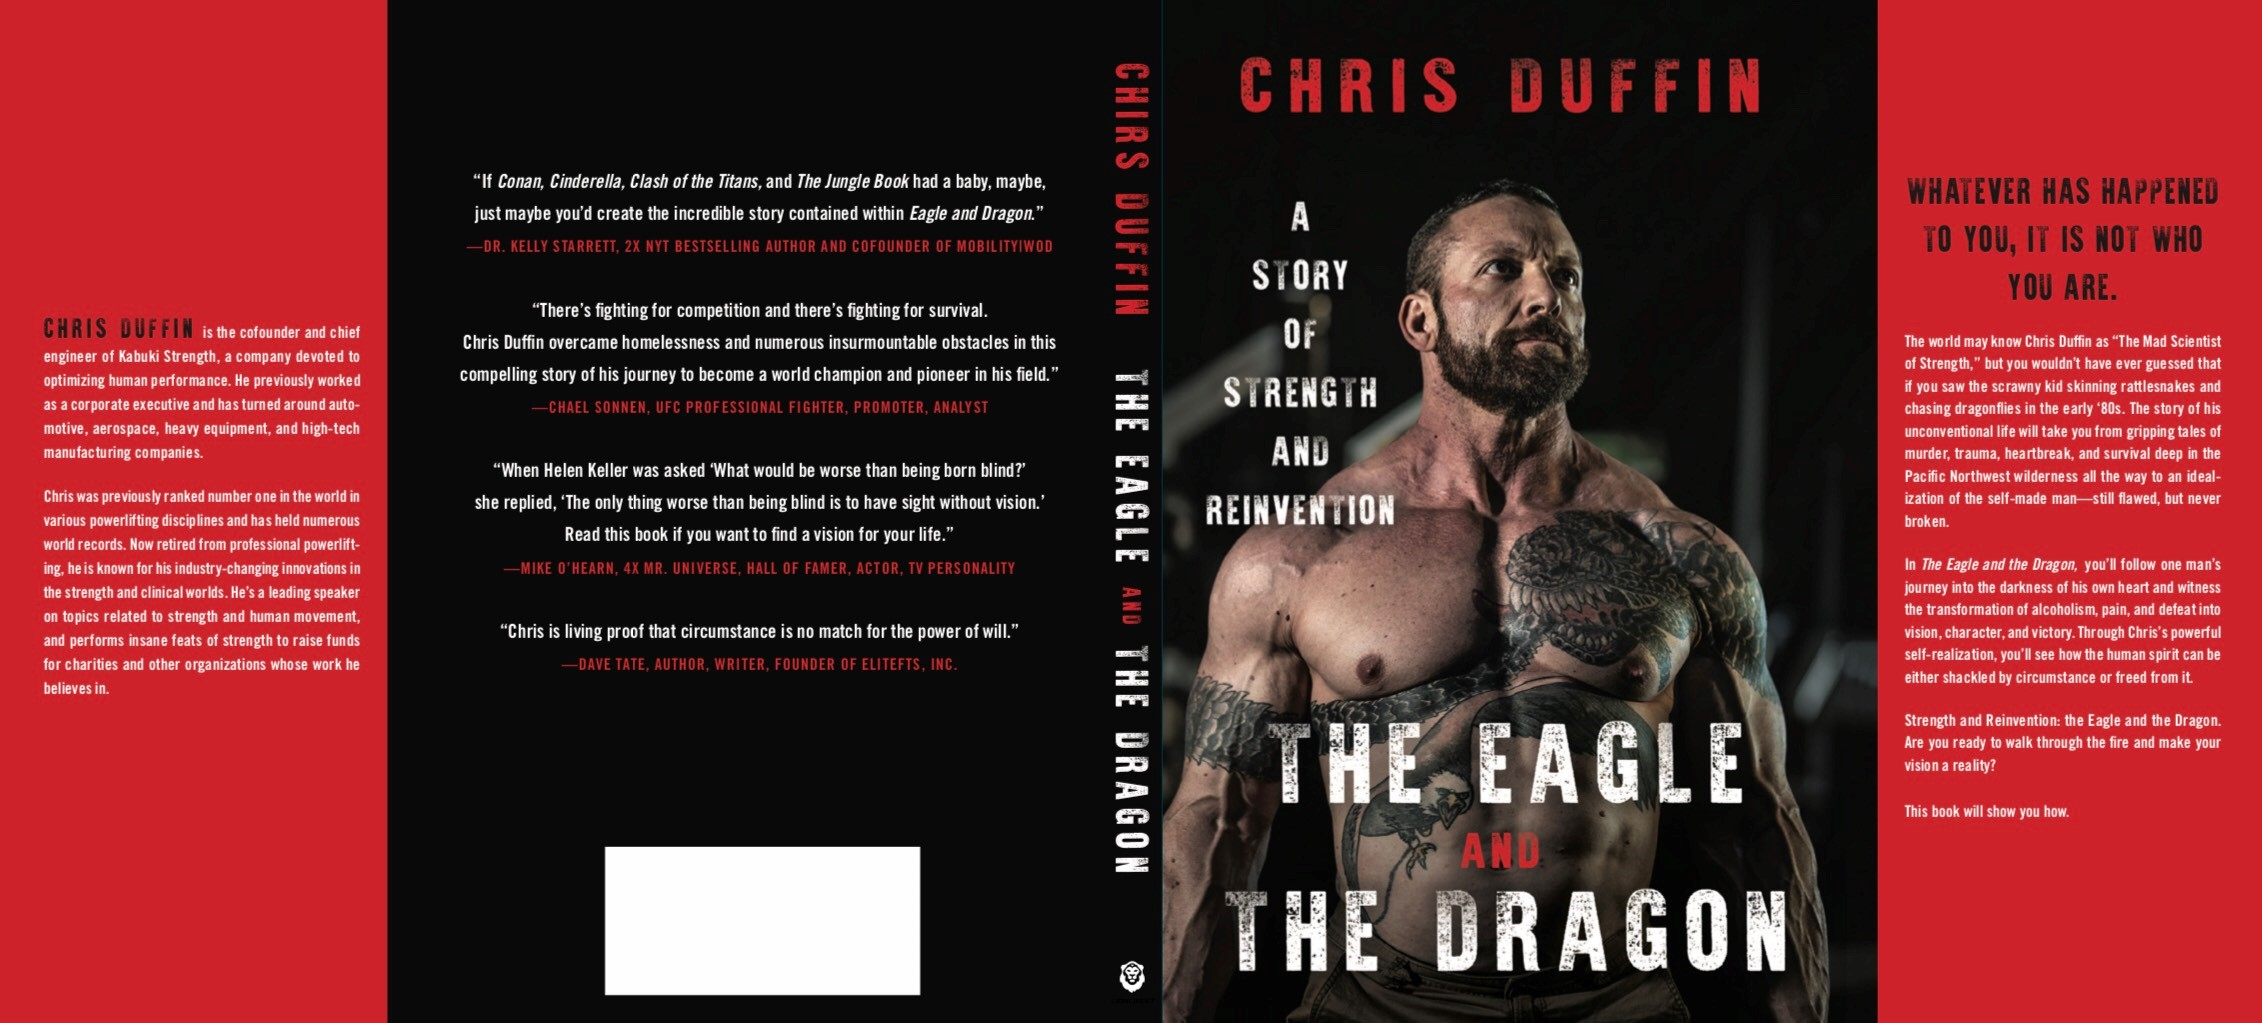 Chris Duffin Book